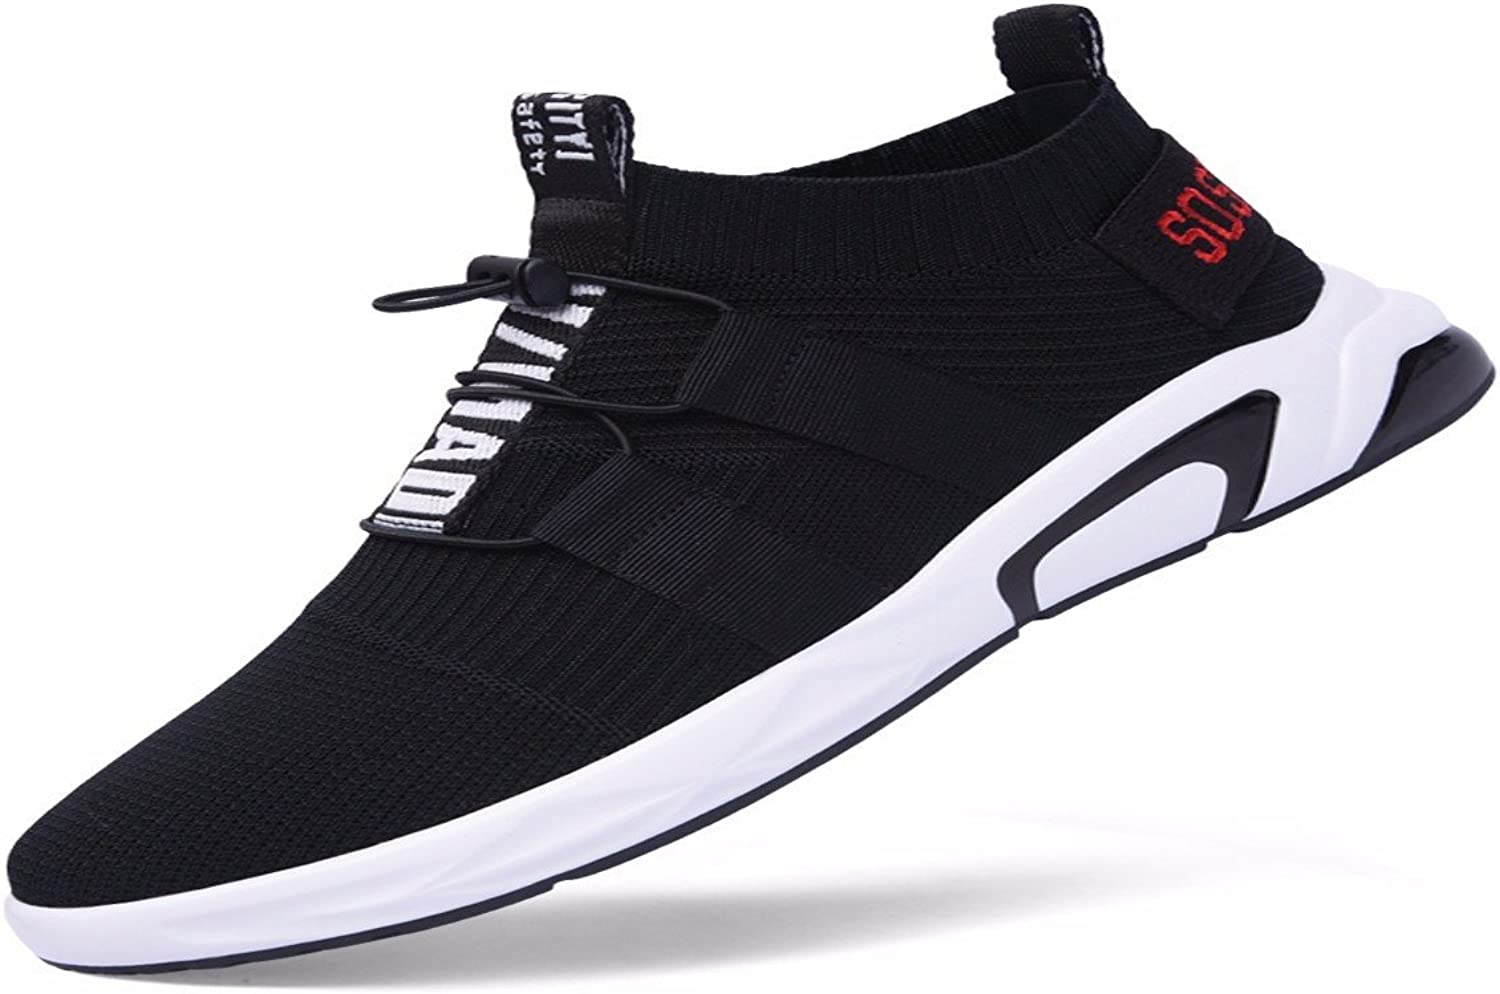 KMJBS-Men'S shoes Summer Sports shoes Casual Sports Sports Running shoes.